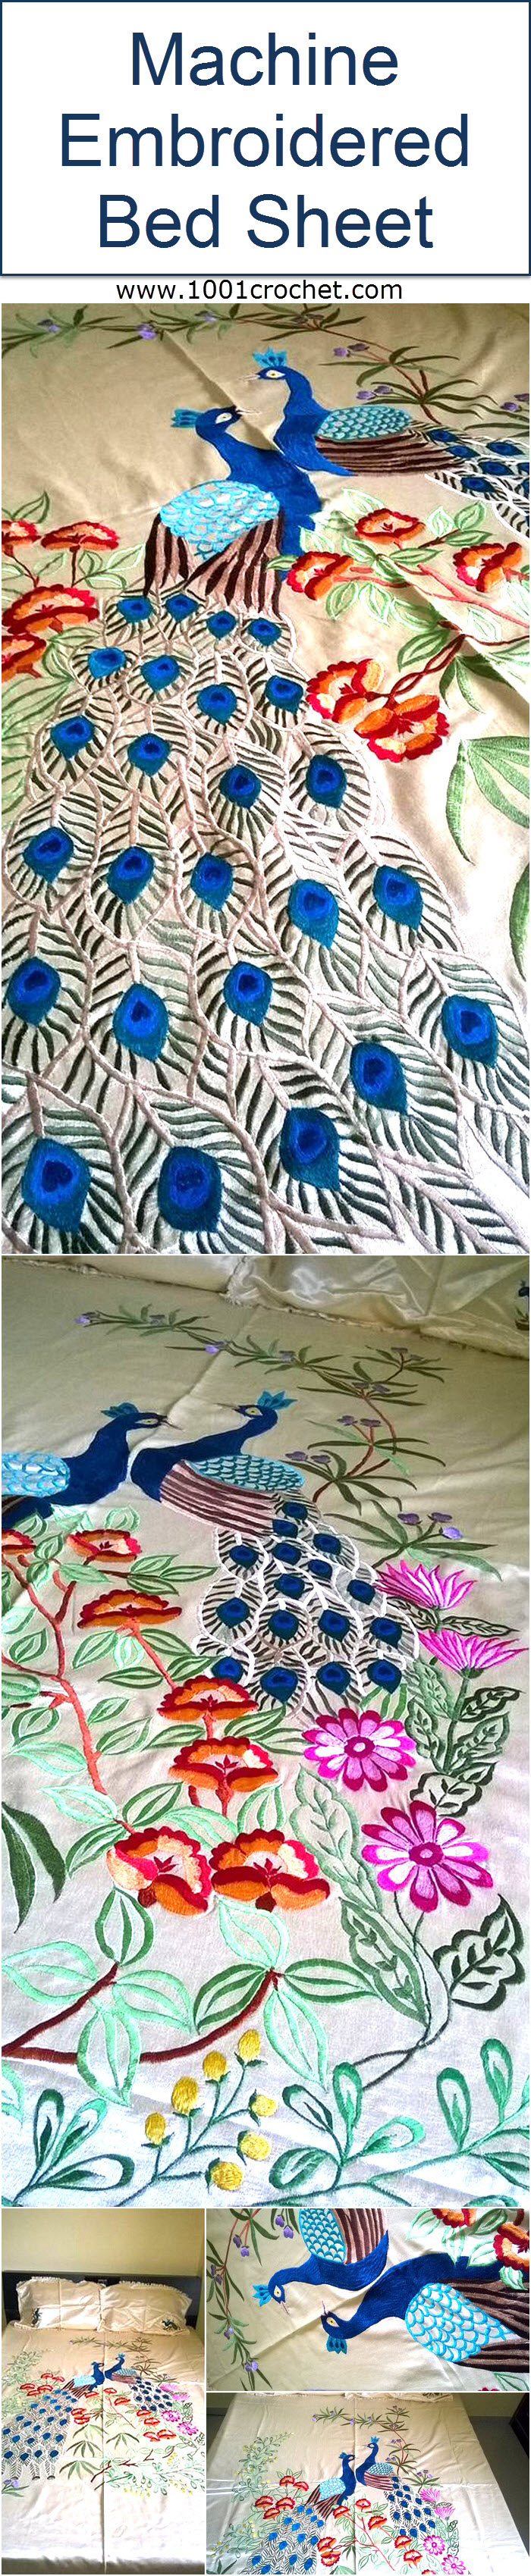 machine-embroidered-bed-sheet